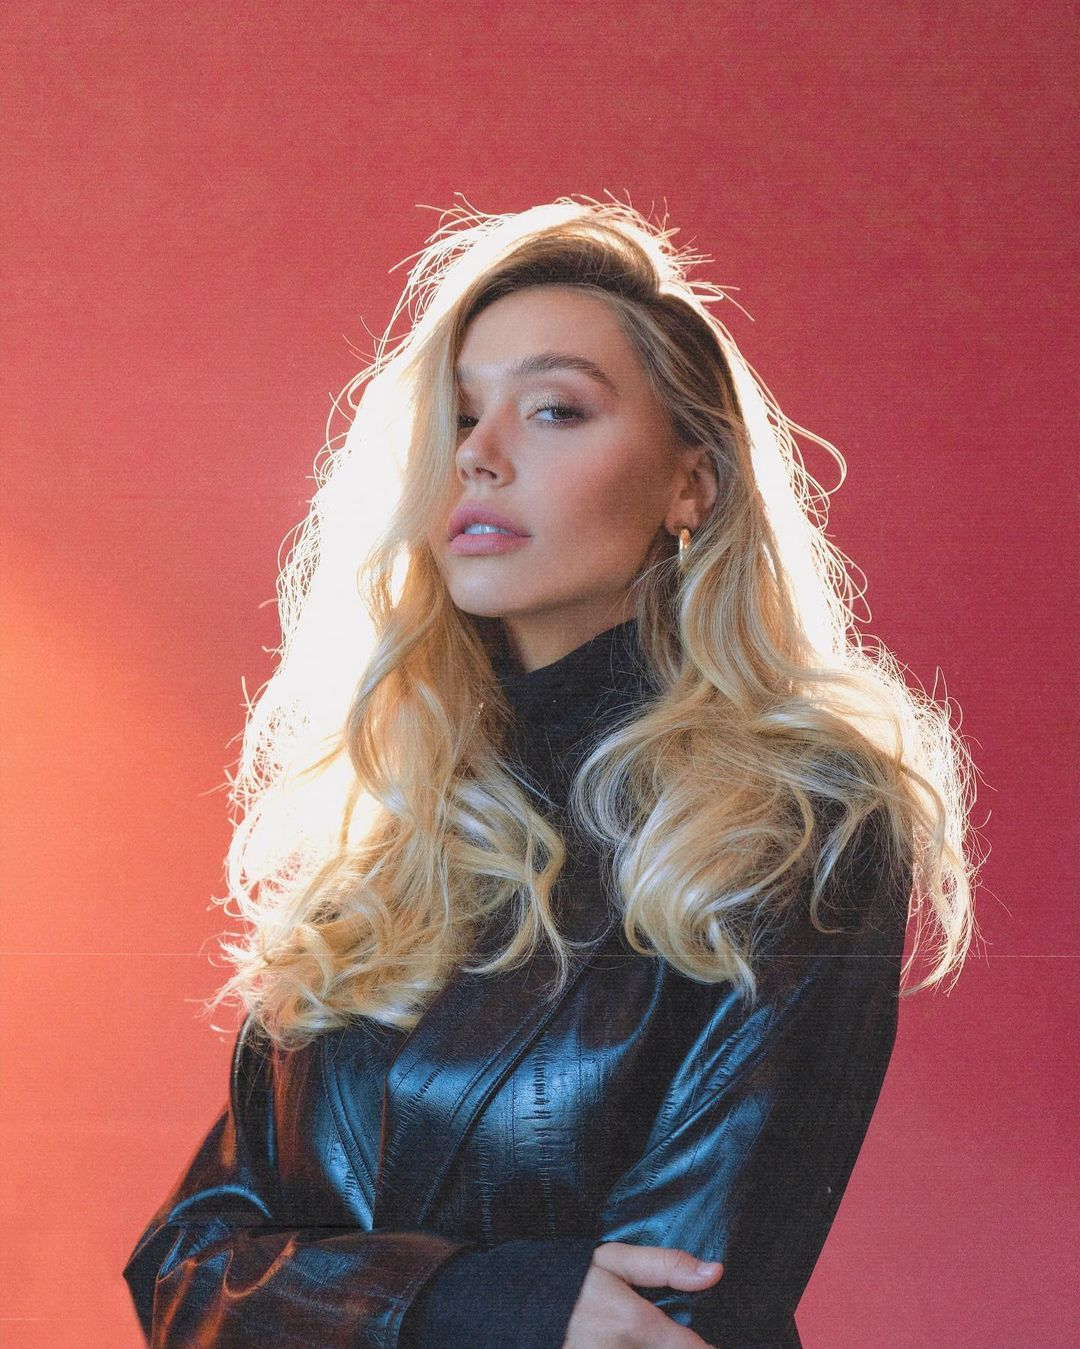 Alexis Ren is on the agenda with her modeling works 4